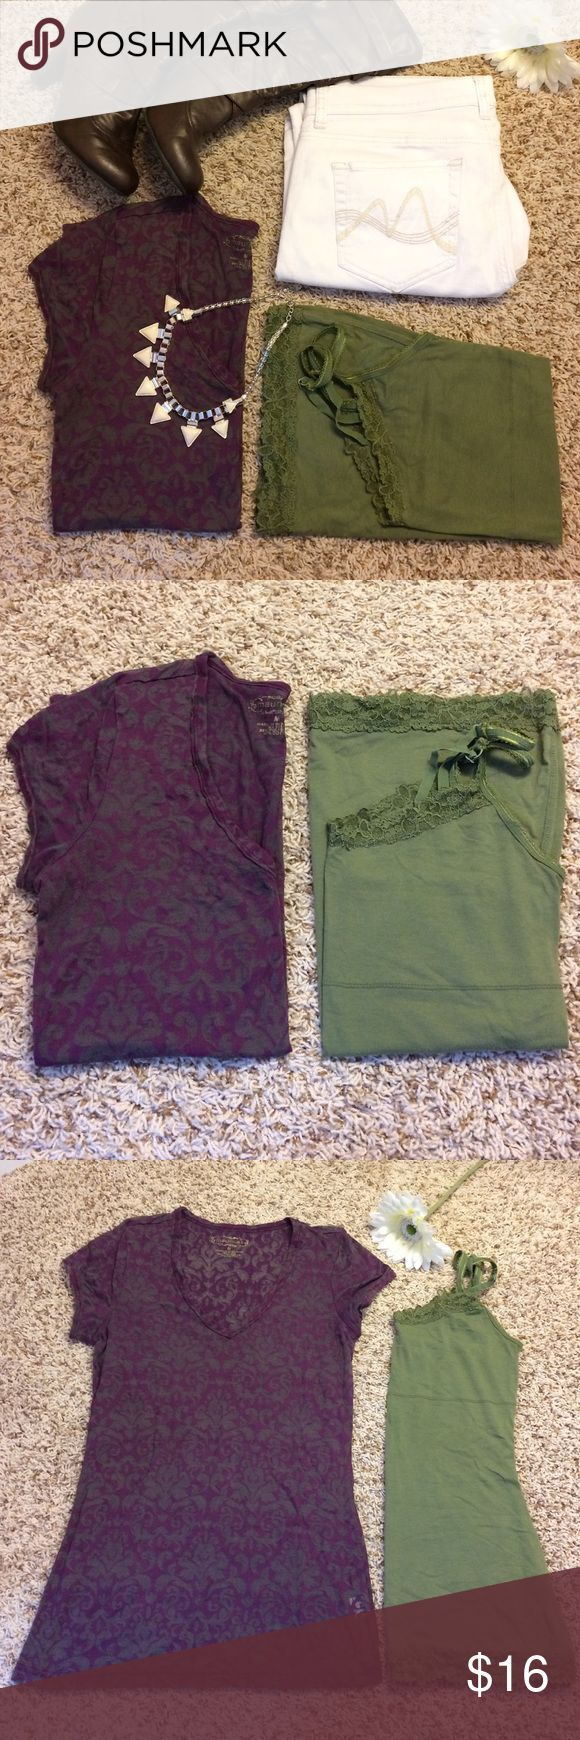 MAURICES Burnout Tee & Lace Tank EUC!! Little pilling under arms of tee, otherwise both are in excellent shape! Purple burnout tee looks awesome with the green tank underneath.❤️ Both size M, TTS. Maurices Tops